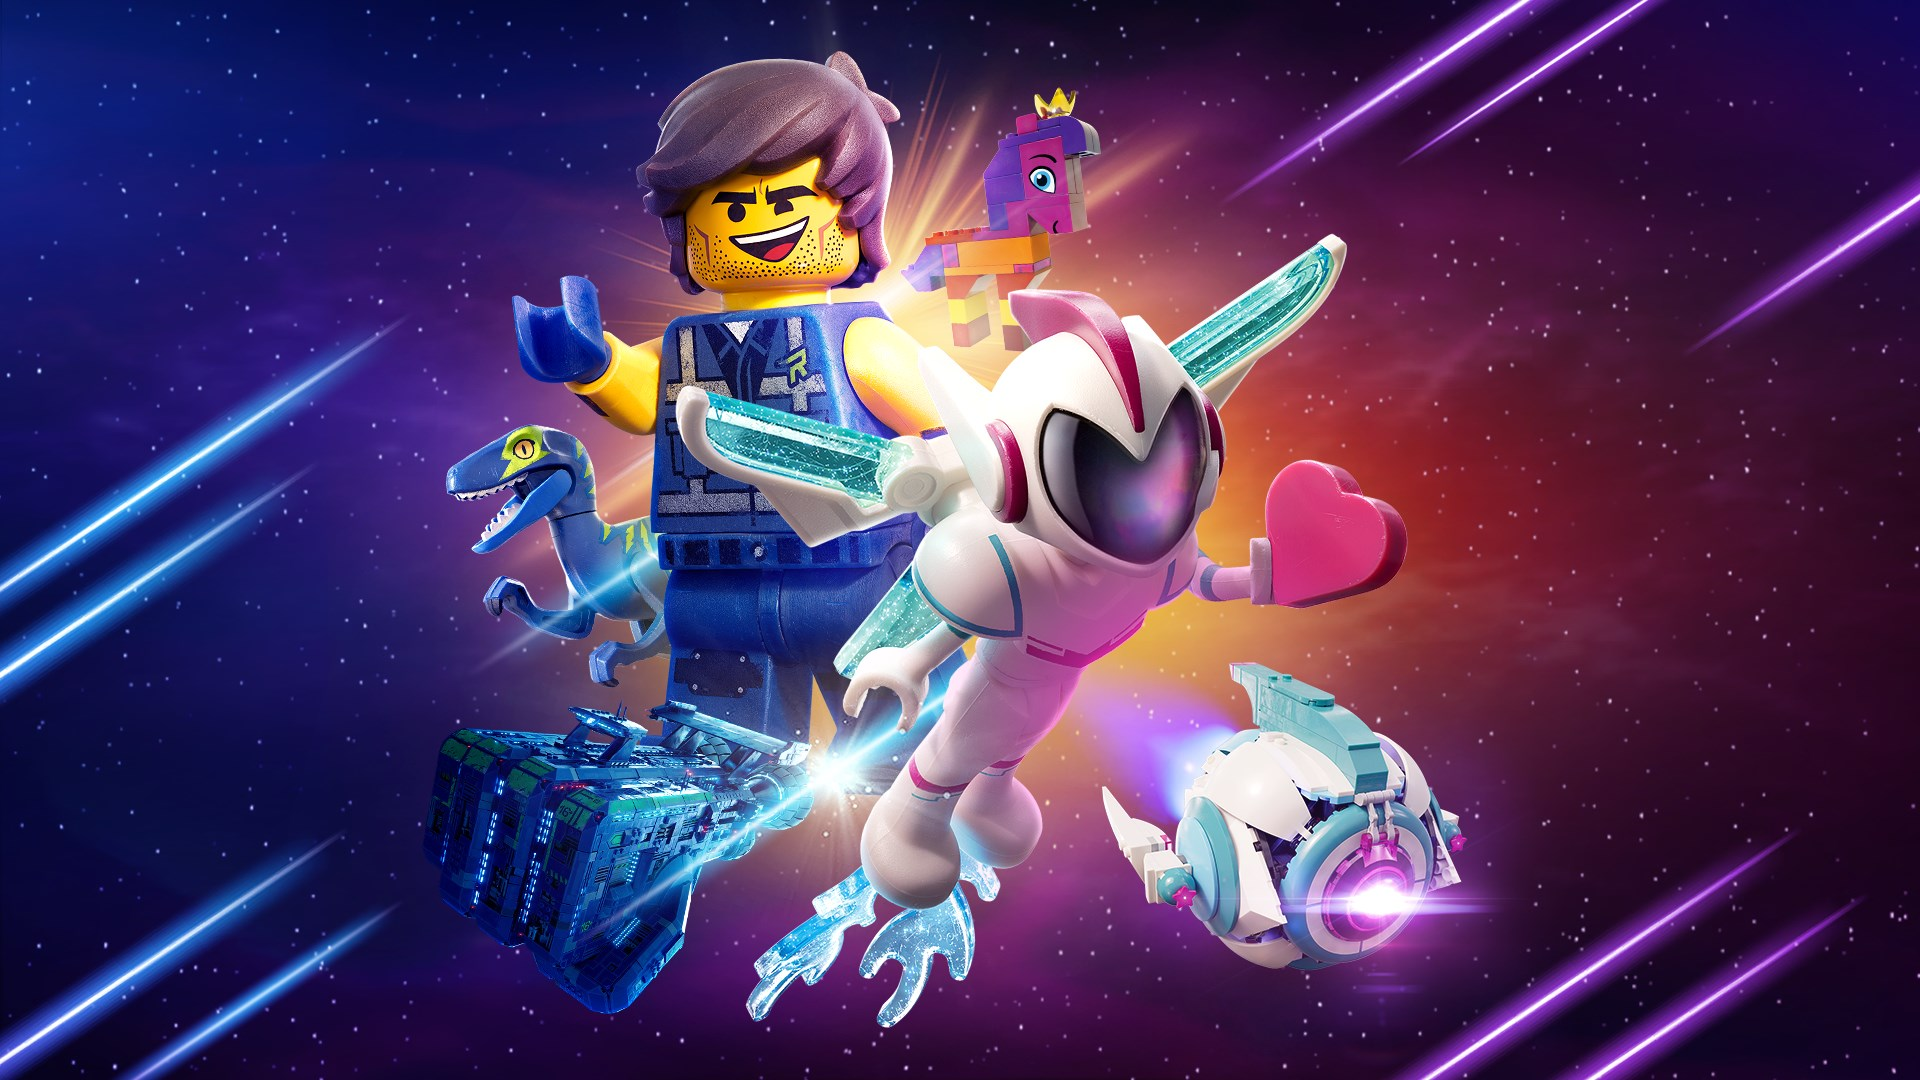 Galactic Adventures Character & Level Pack